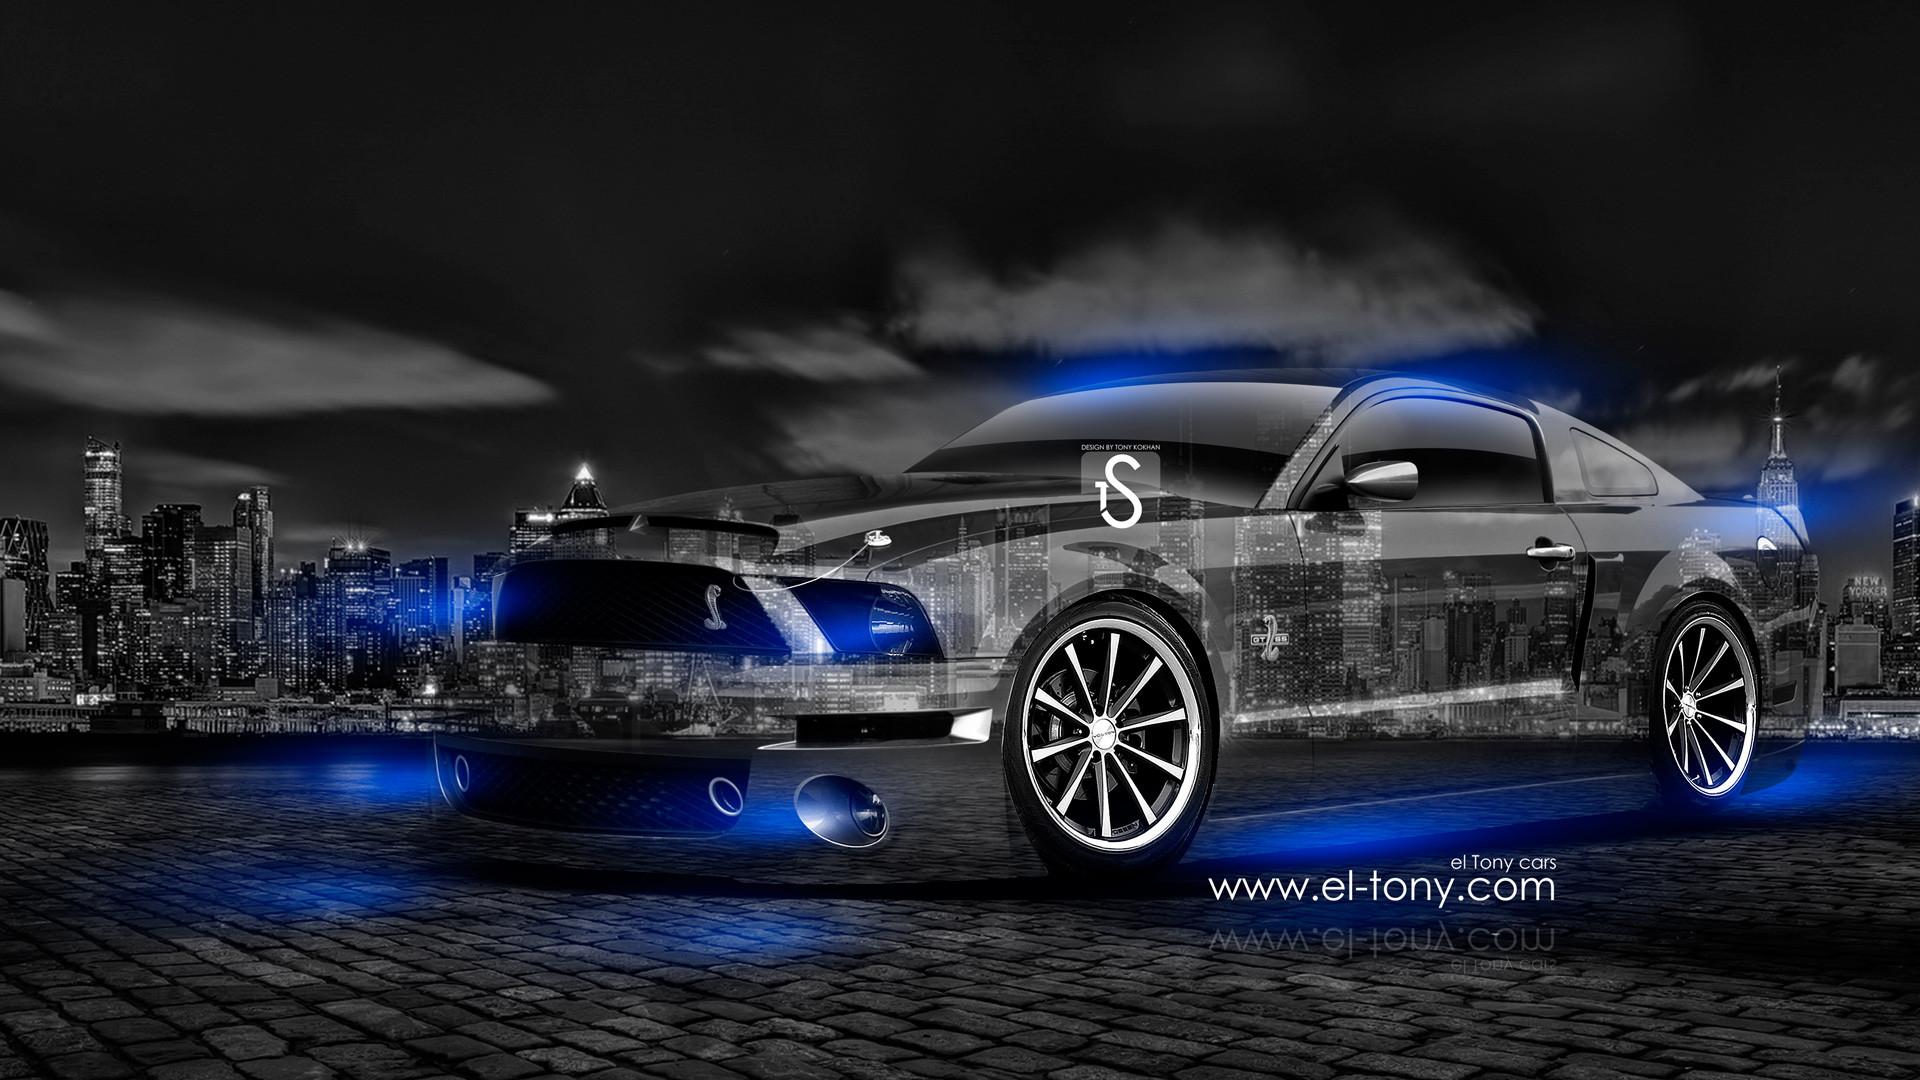 Muscle Car Screensavers And Wallpaper: Muscle Car Screensavers And Wallpaper (72+ Images